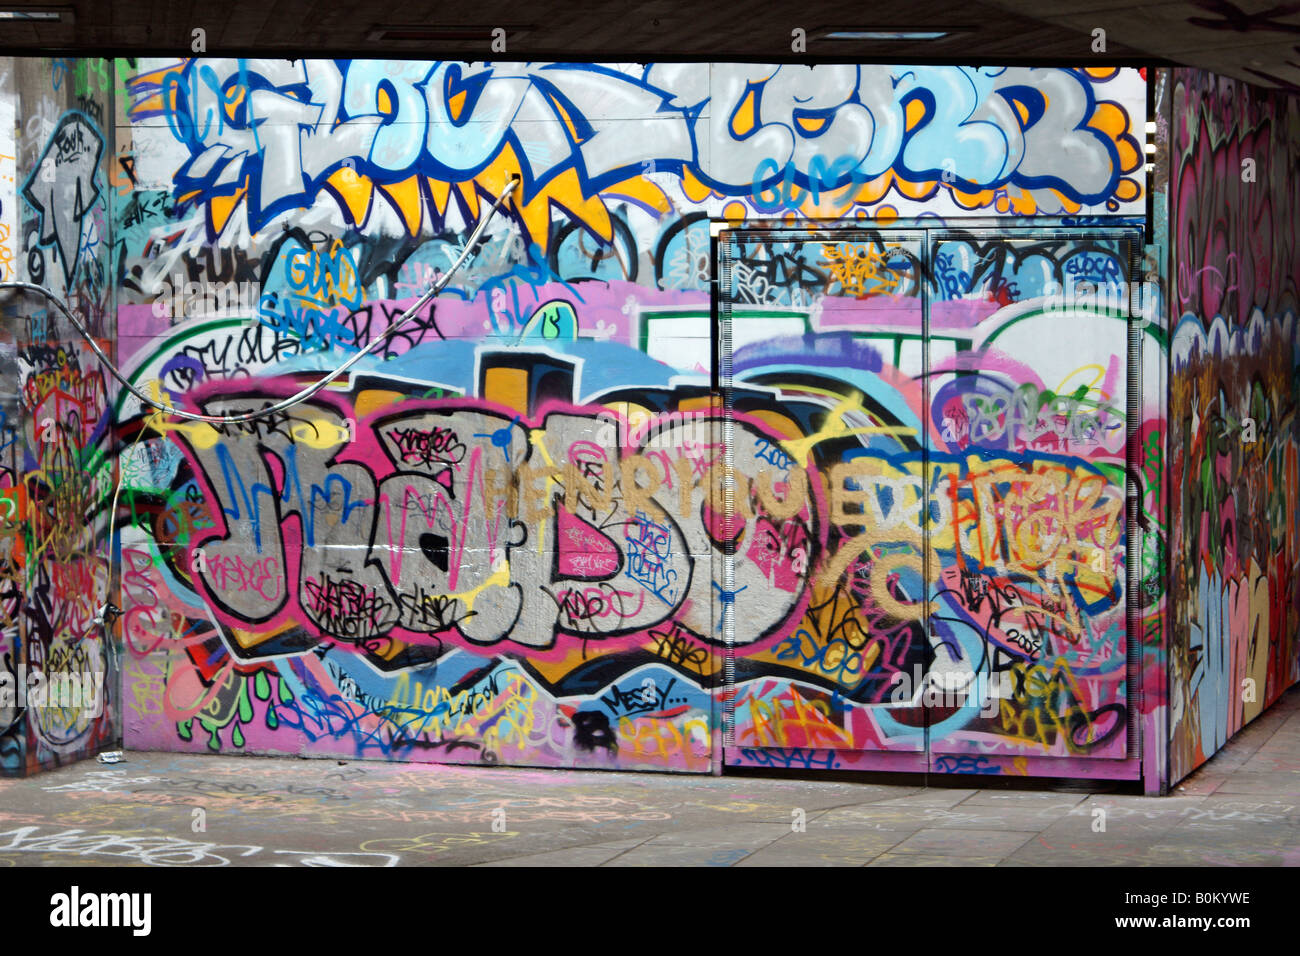 Graffitti on the South Bank of the River Thames in London - Stock Image